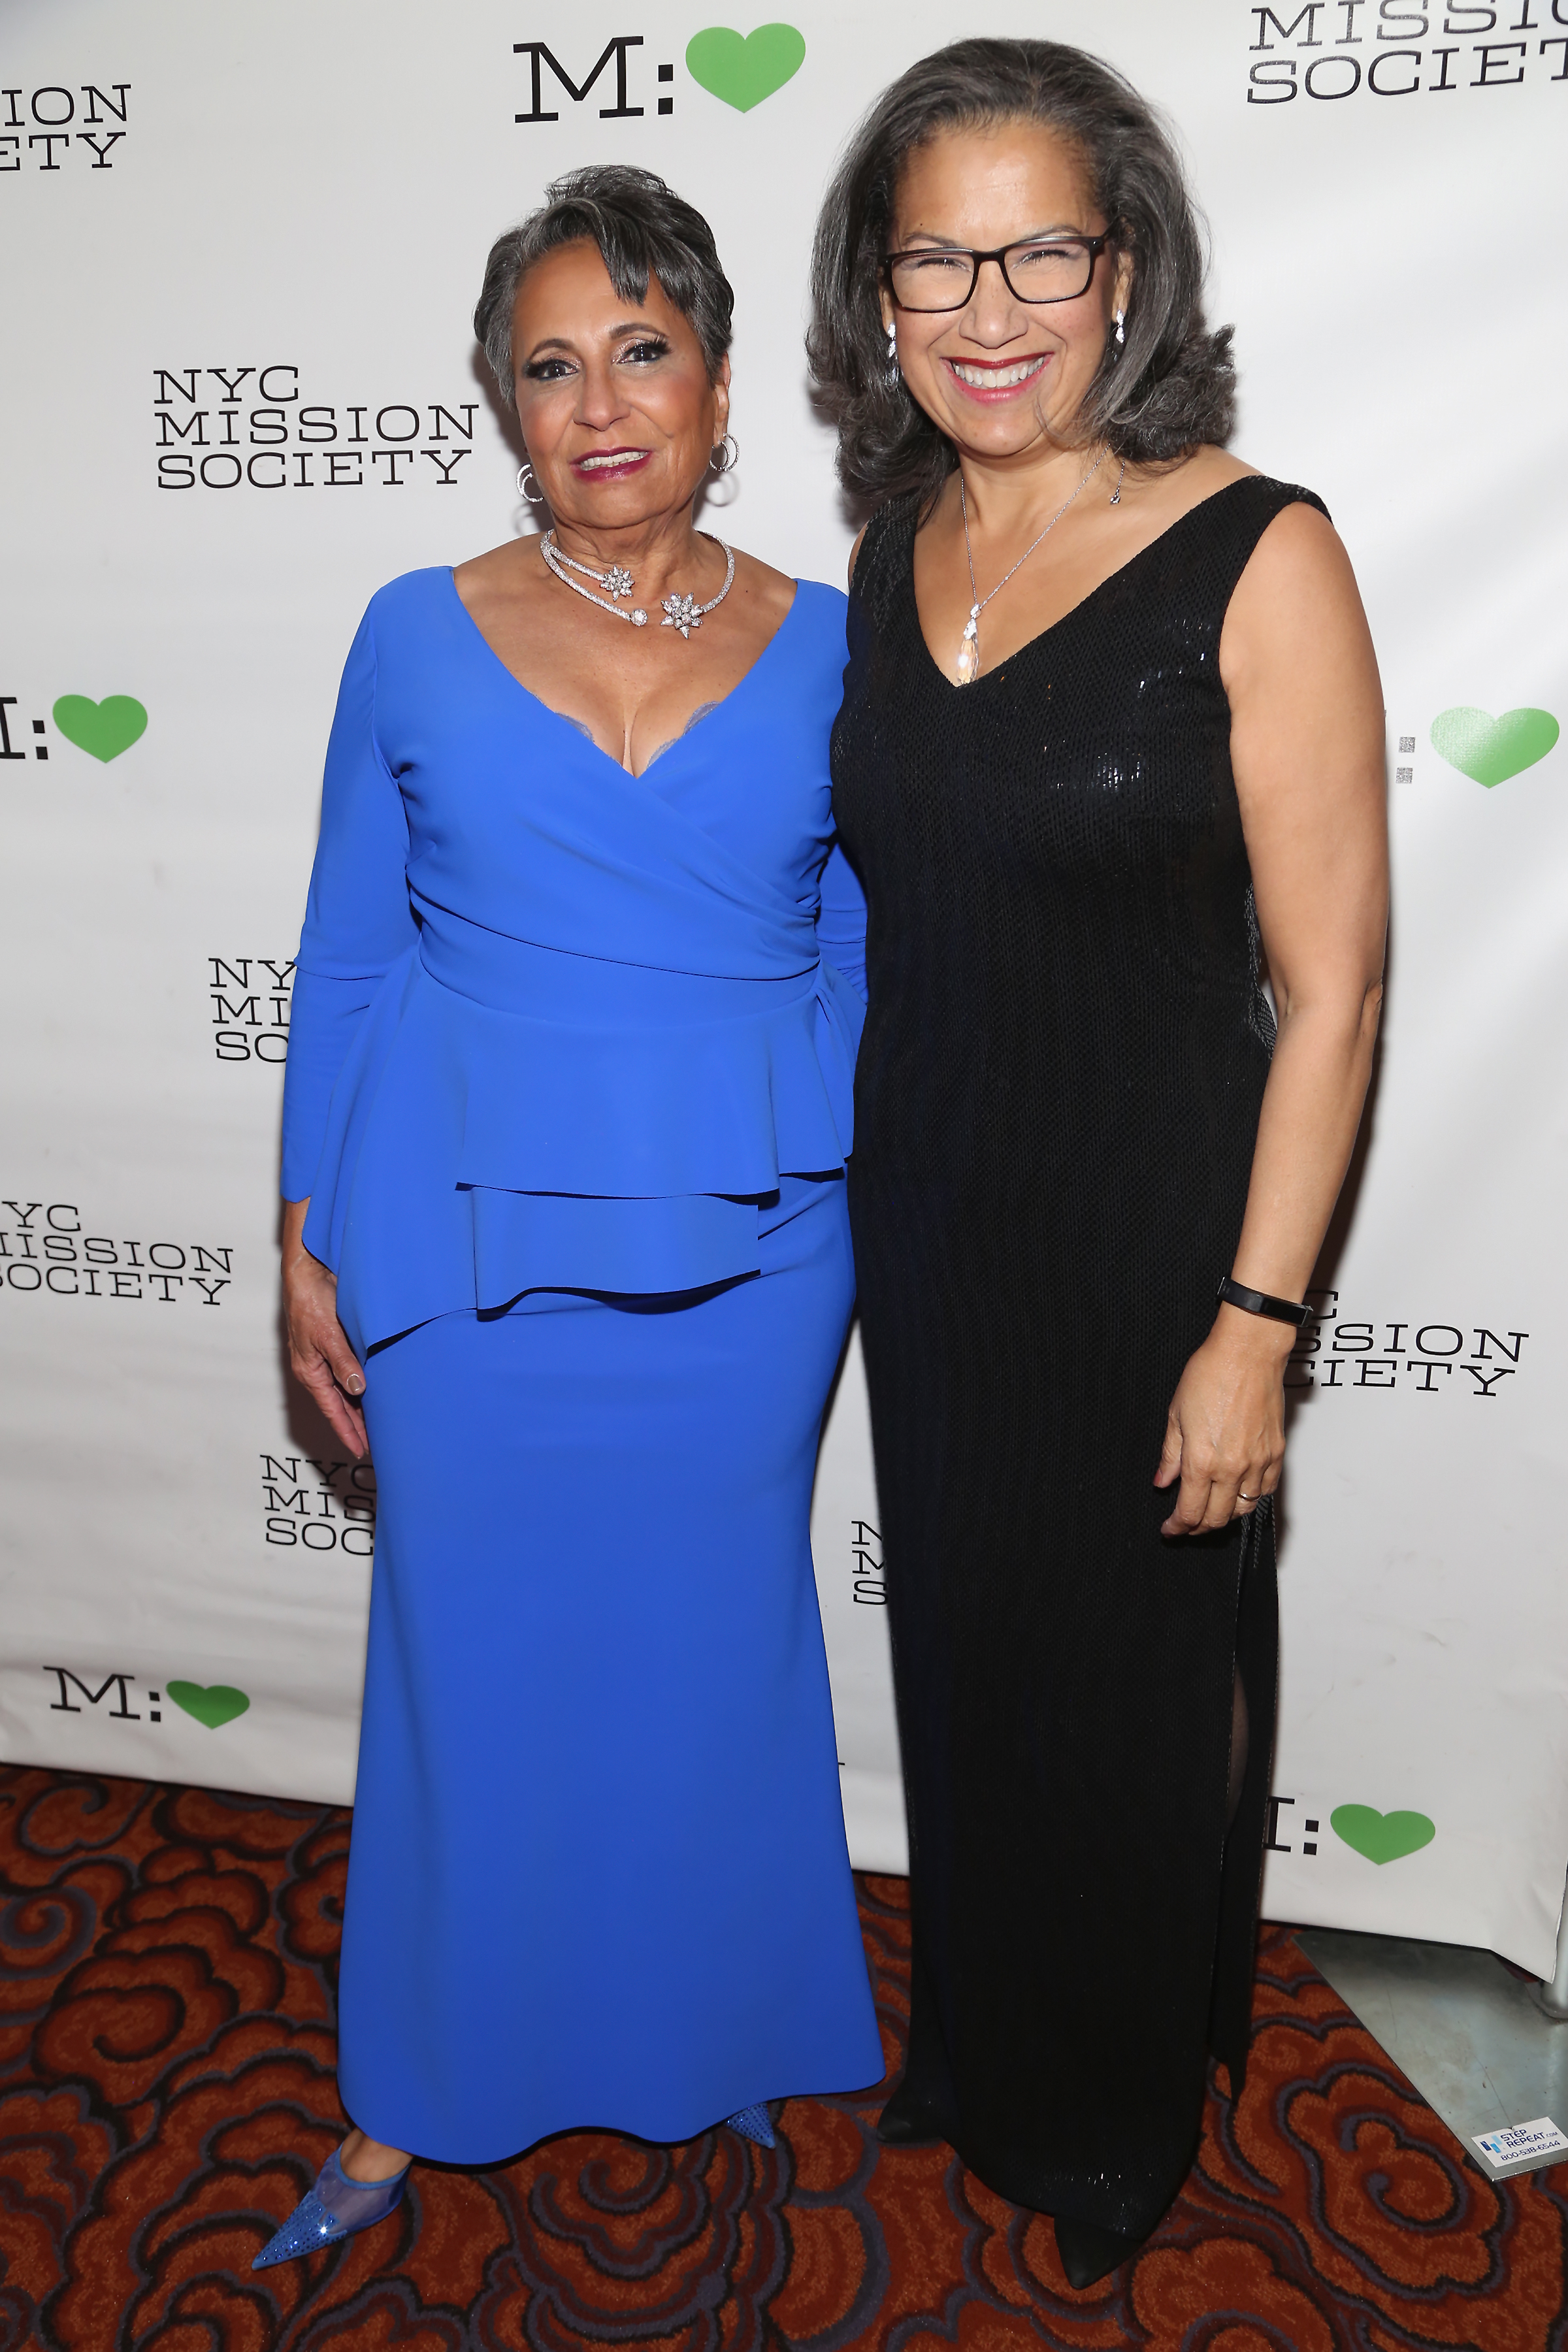 2018 Champions for Children Gala - NYC Mission Society